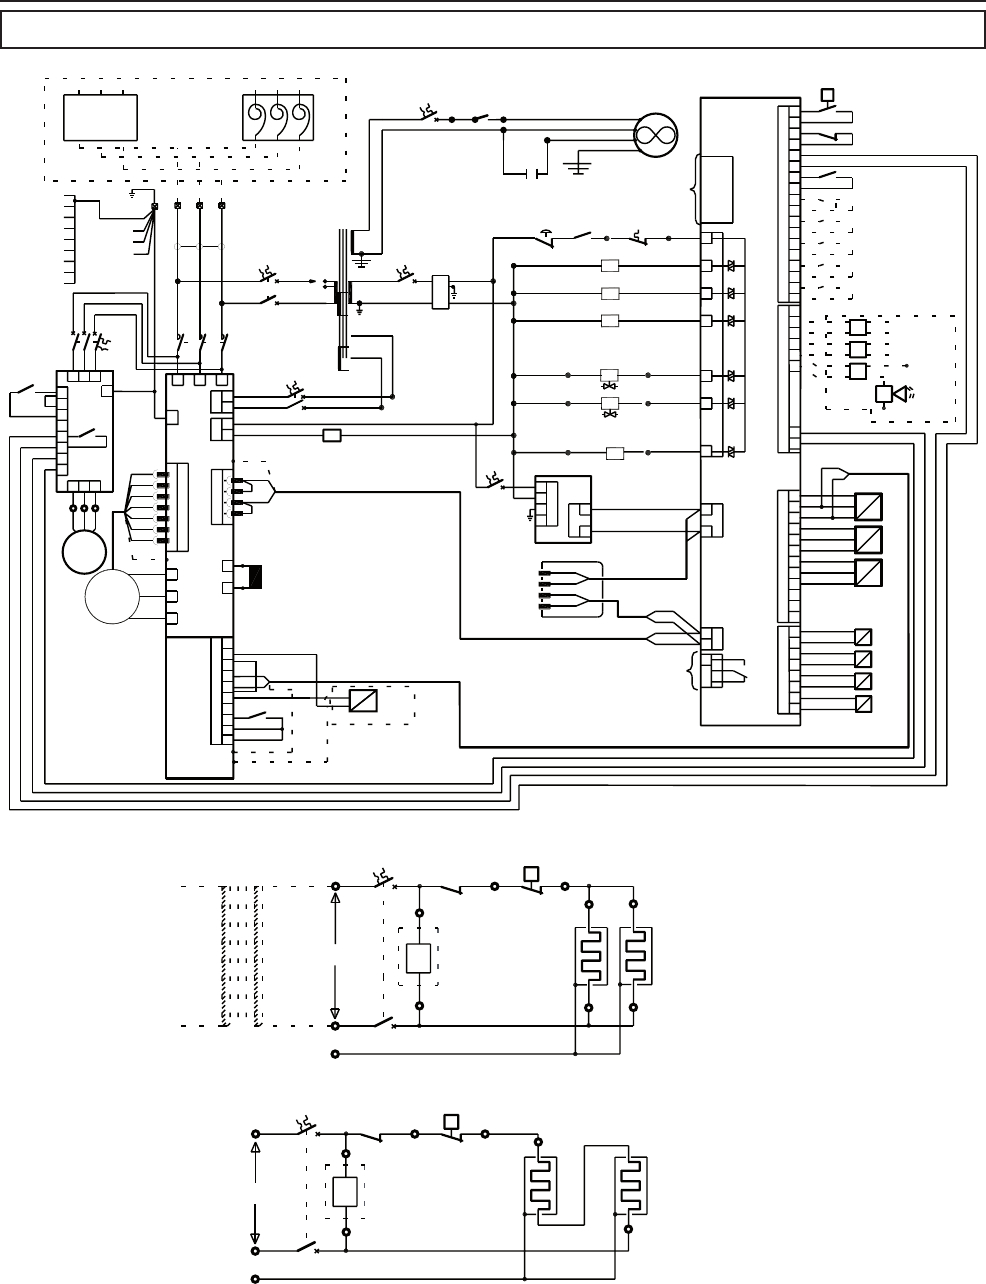 [WRG-7792] Air Compressor Schematic Diagram